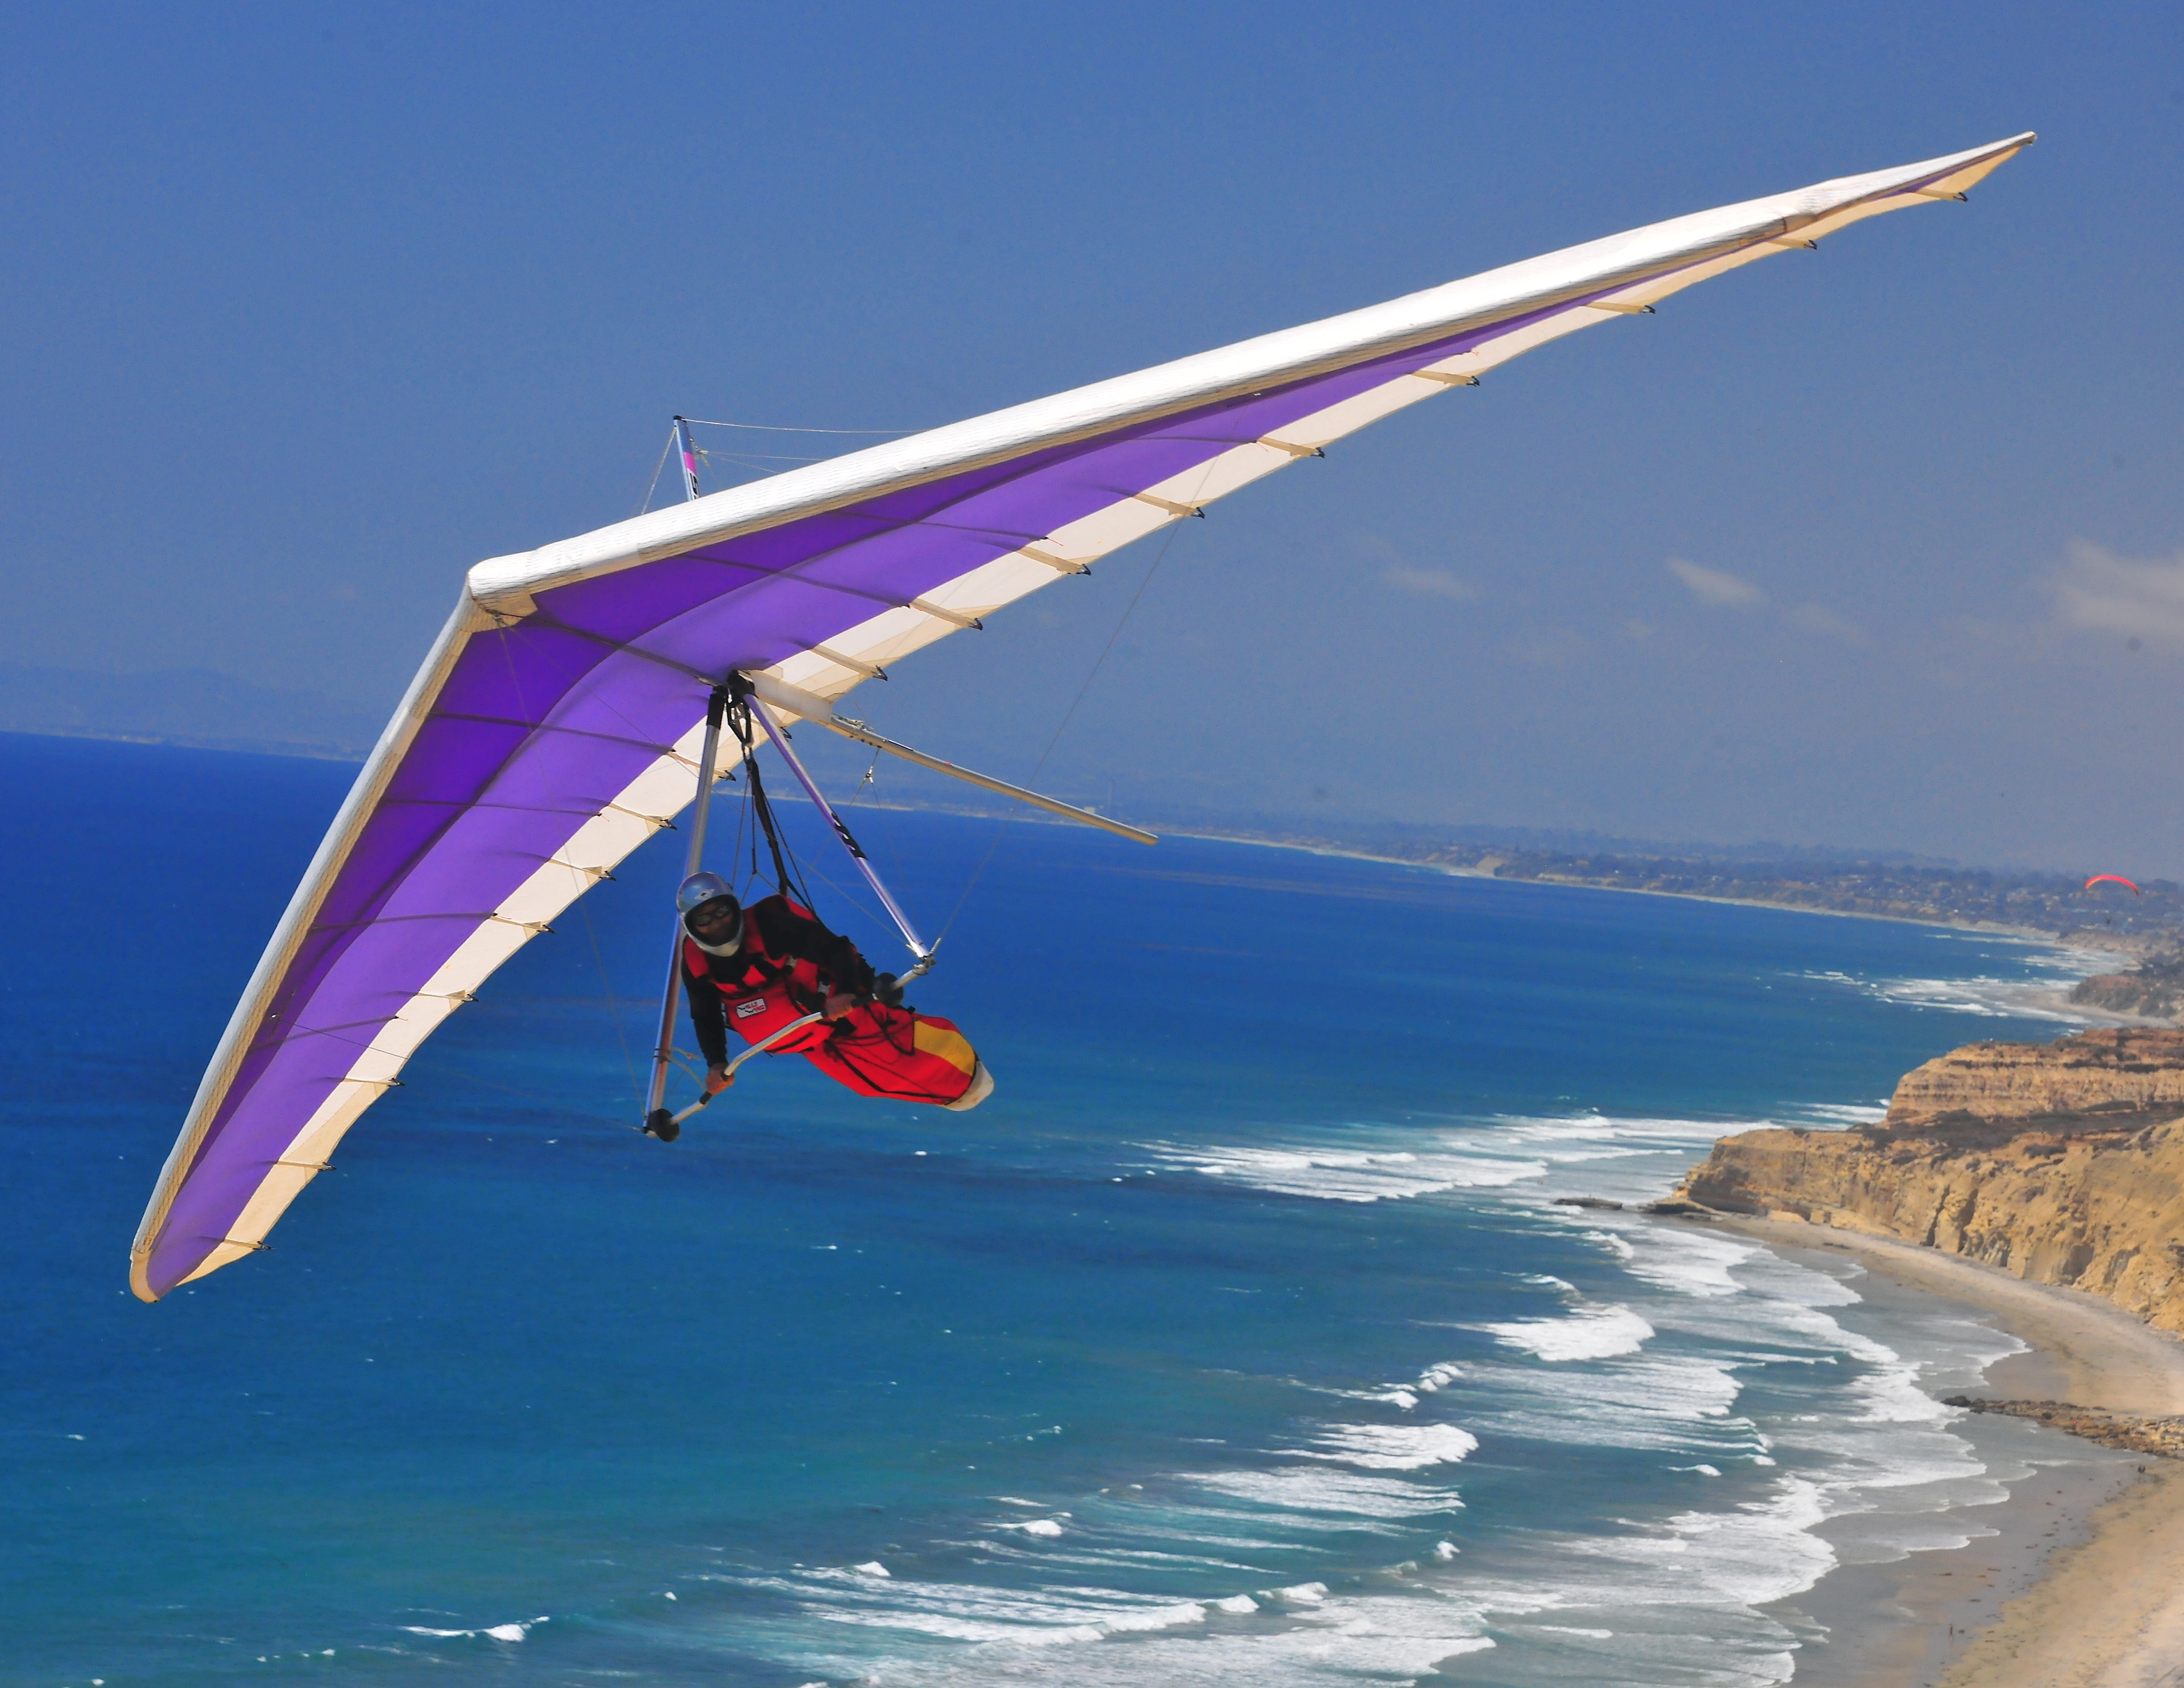 4759x3679 - Hang Gliding Wallpapers 16